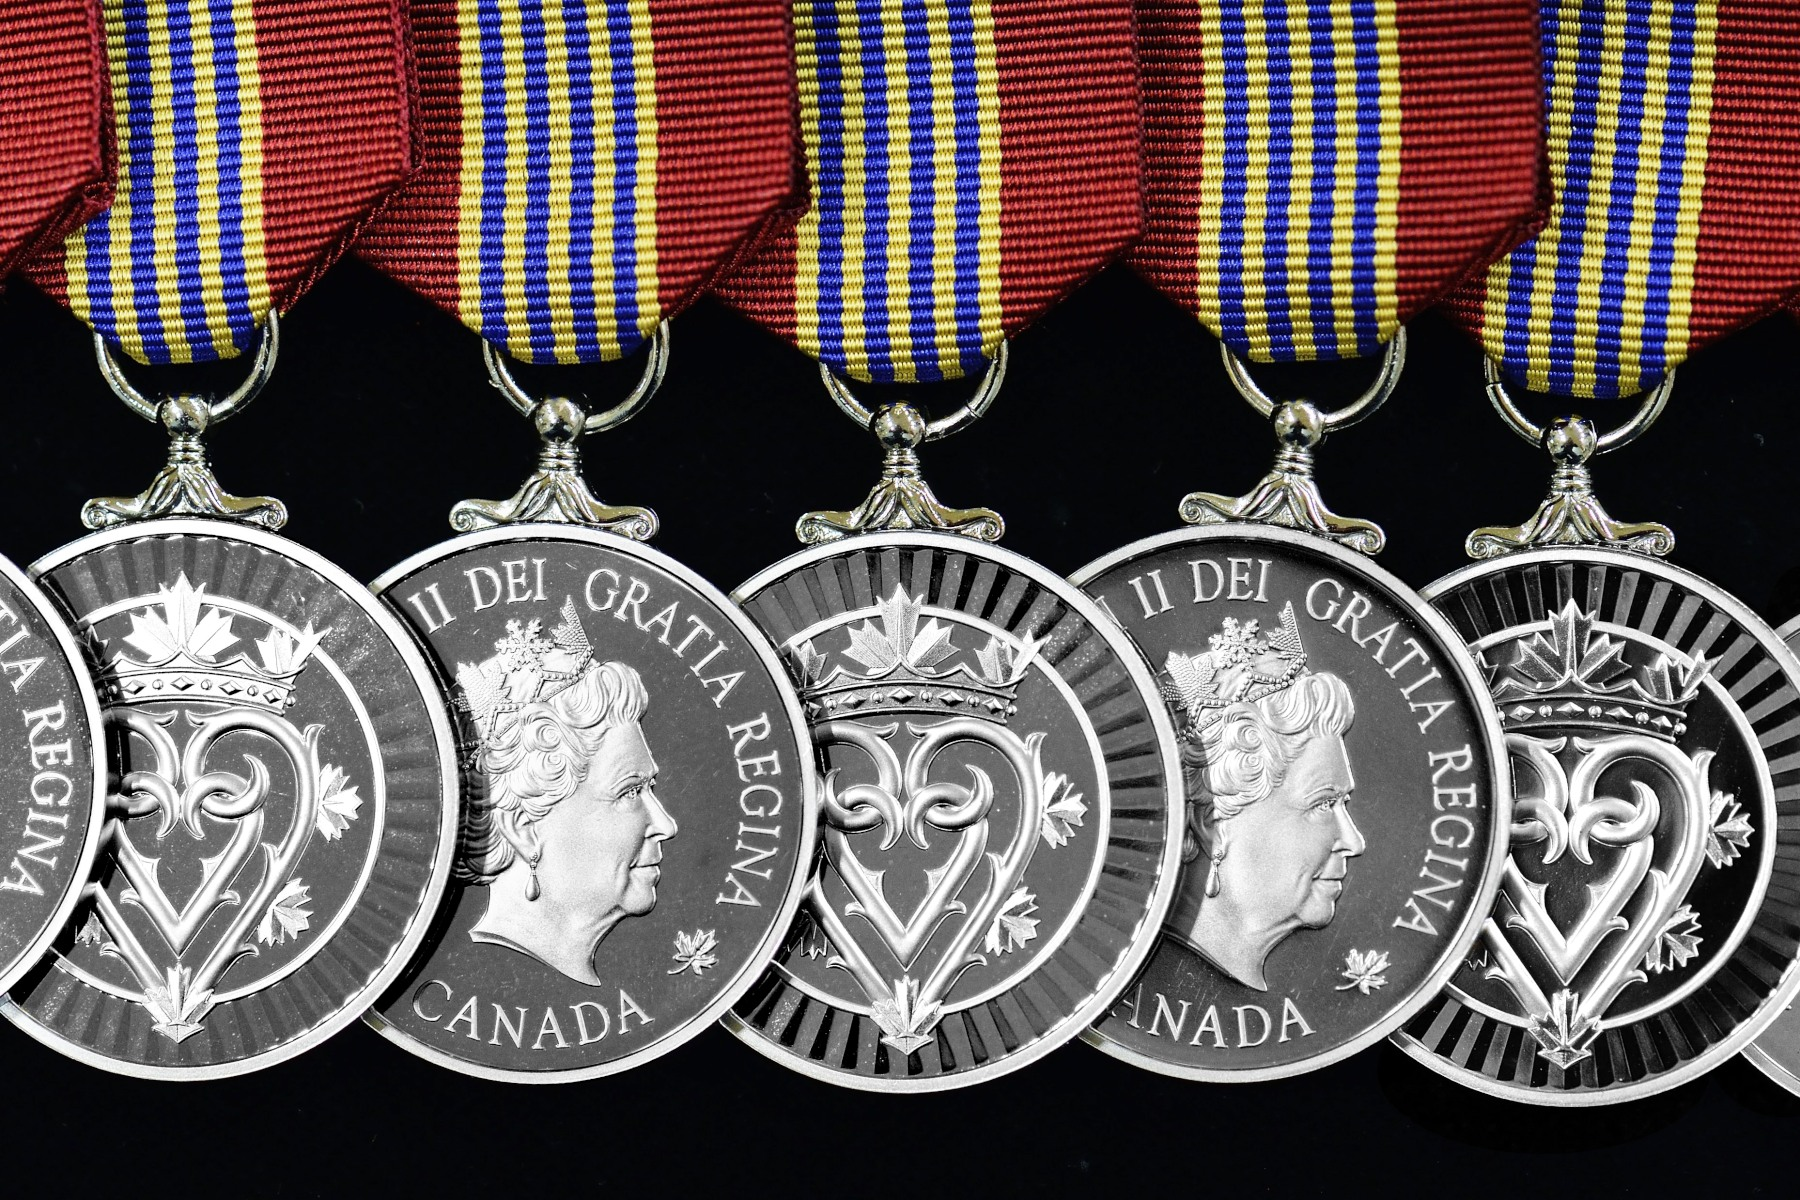 As an official Canadian honour, the Medal for Volunteers incorporates and replaces the Governor General's Caring Canadian Award, created in 1995 by then-governor general the Right Honourable Roméo LeBlanc. The Medal builds on the legacy and spirit of the Caring Canadian Award by honouring the dedication and commitment of volunteers.